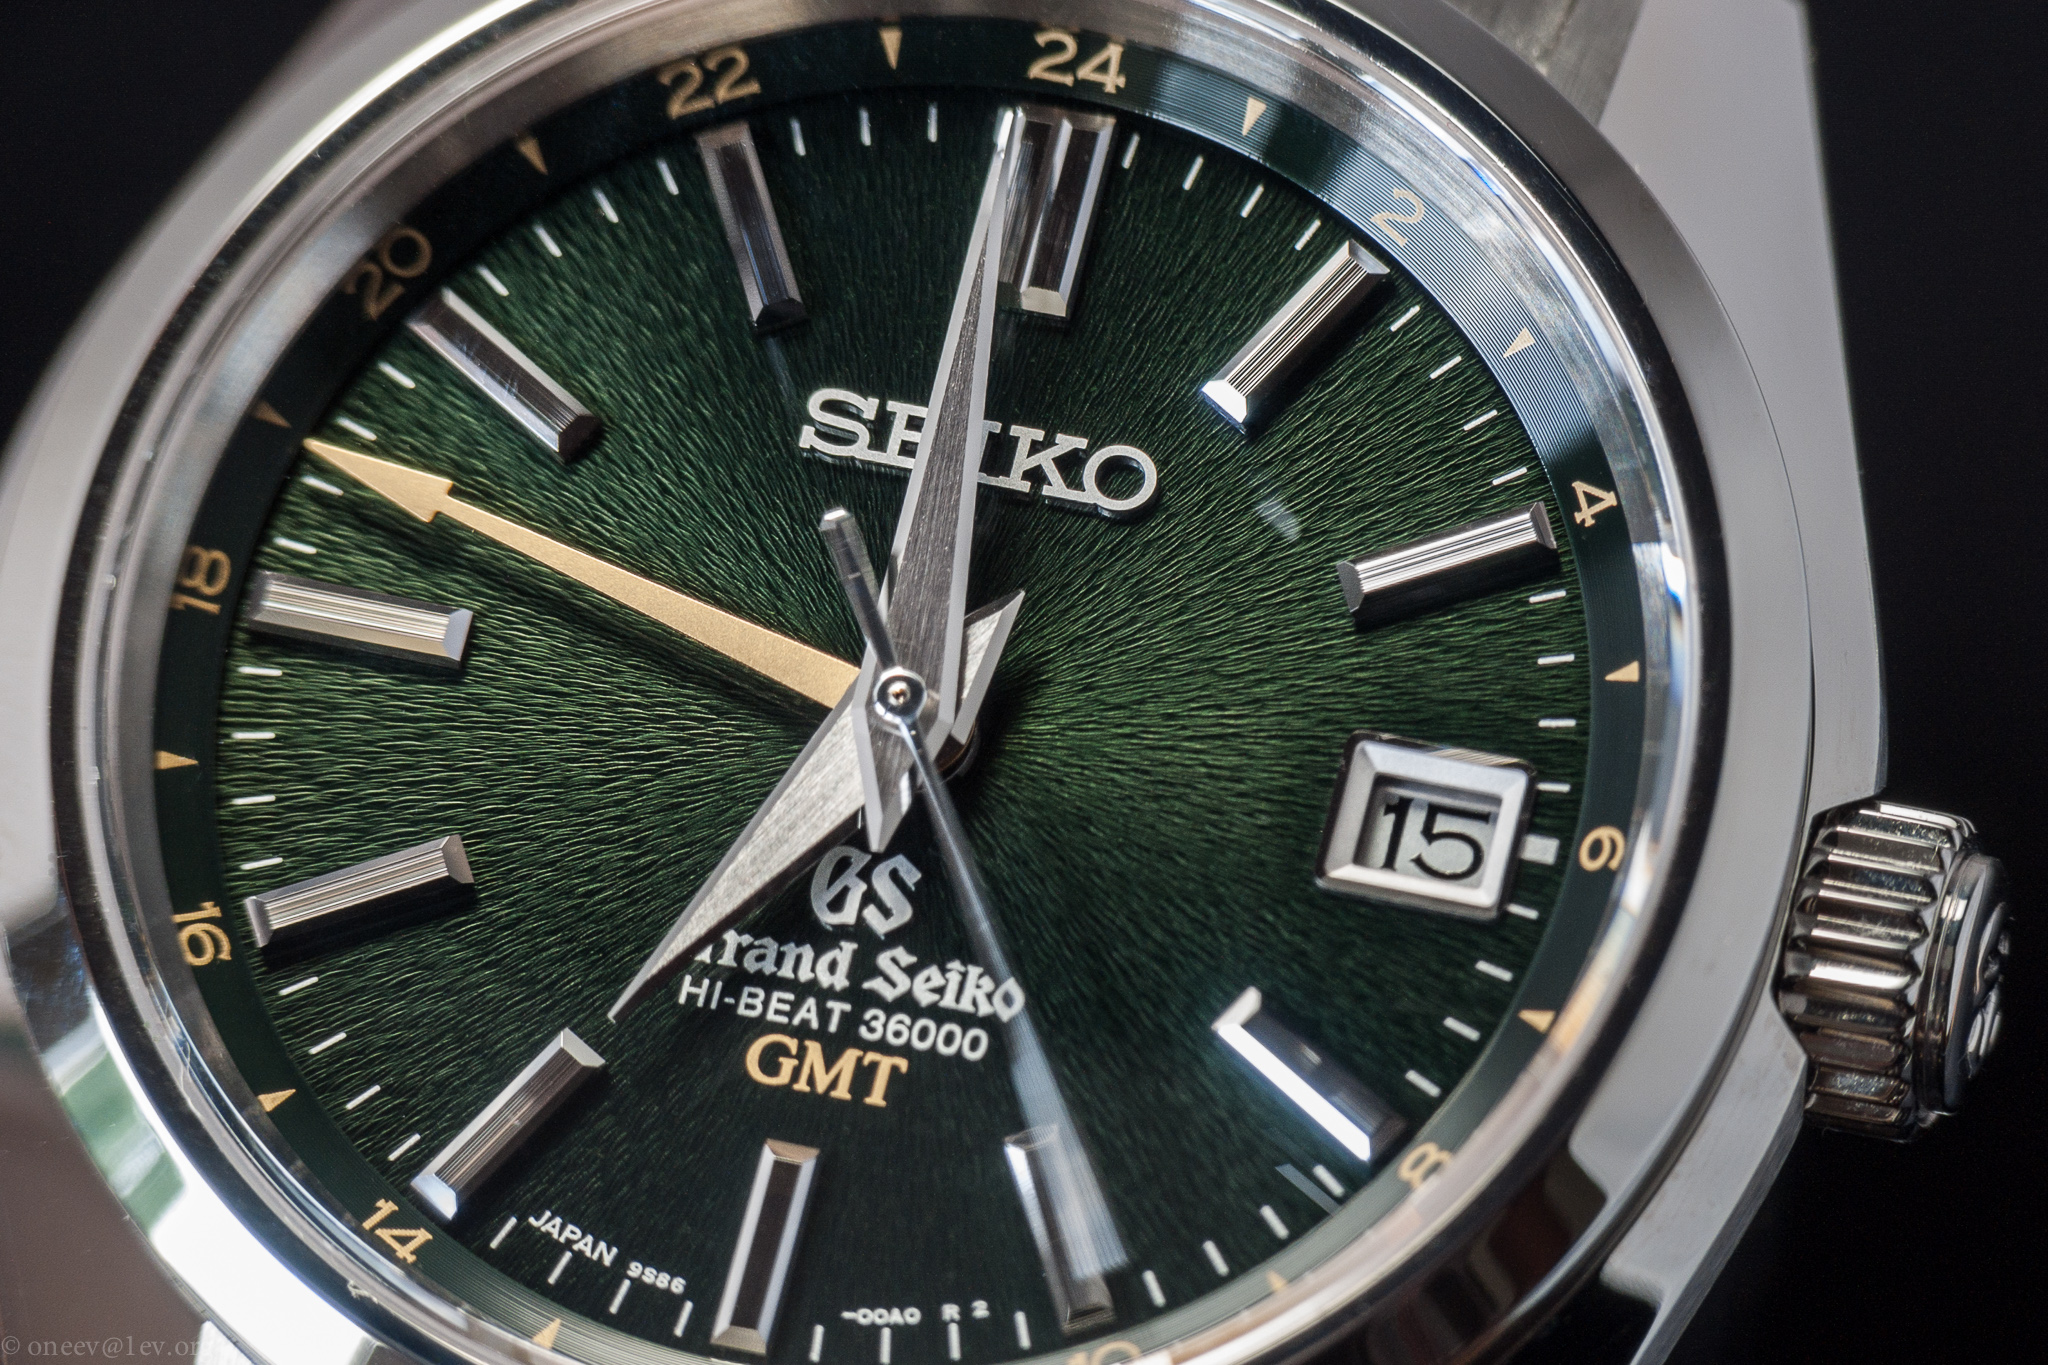 Revue illustrée de la Grand Seiko GMT Hi-Beat SBGJ005 20140915-CRW_2988